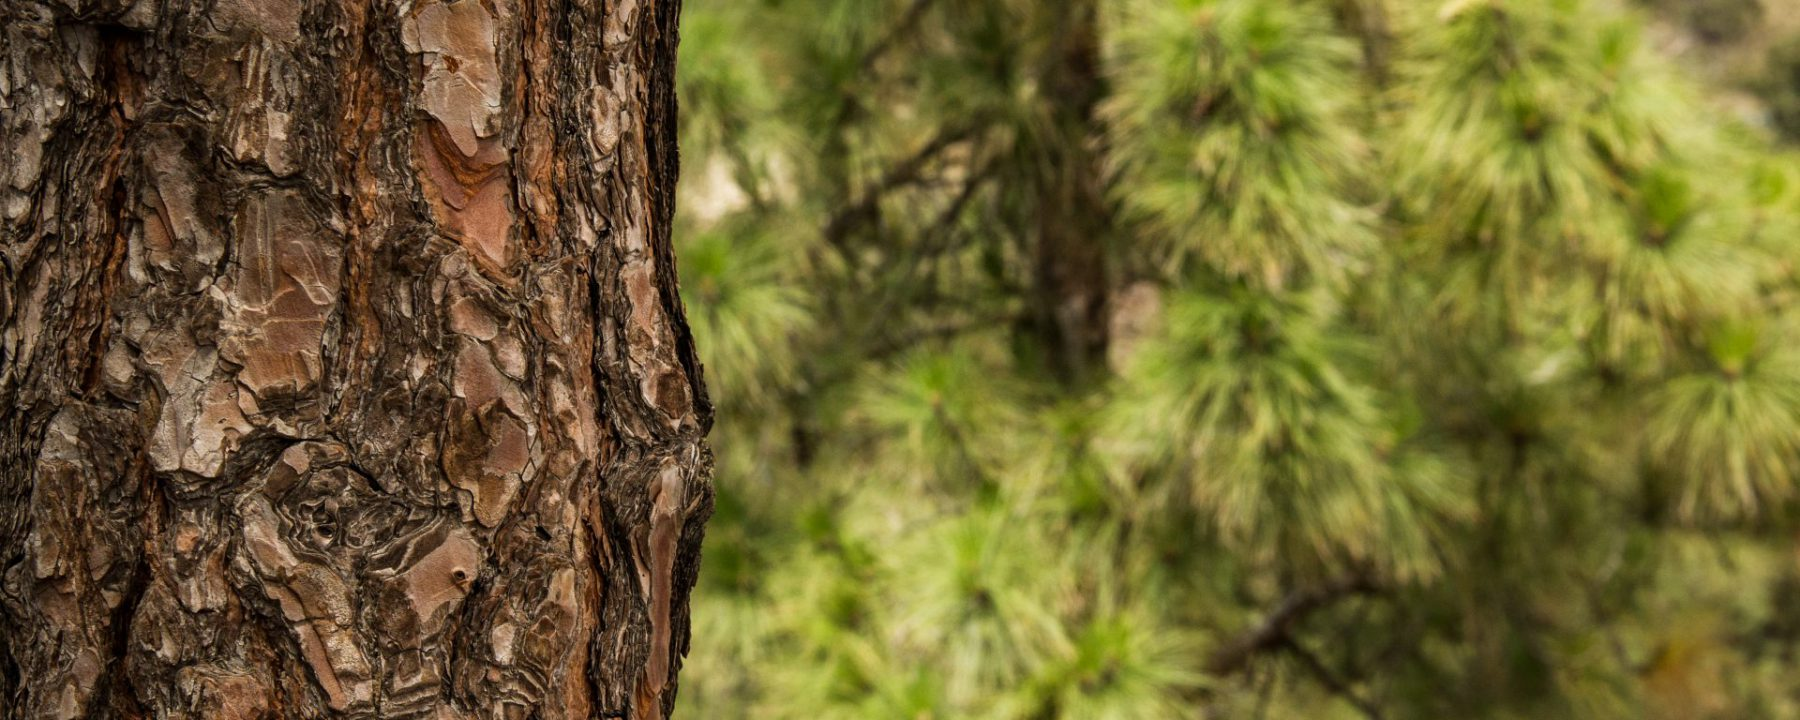 Close up of the bark of a pine tree